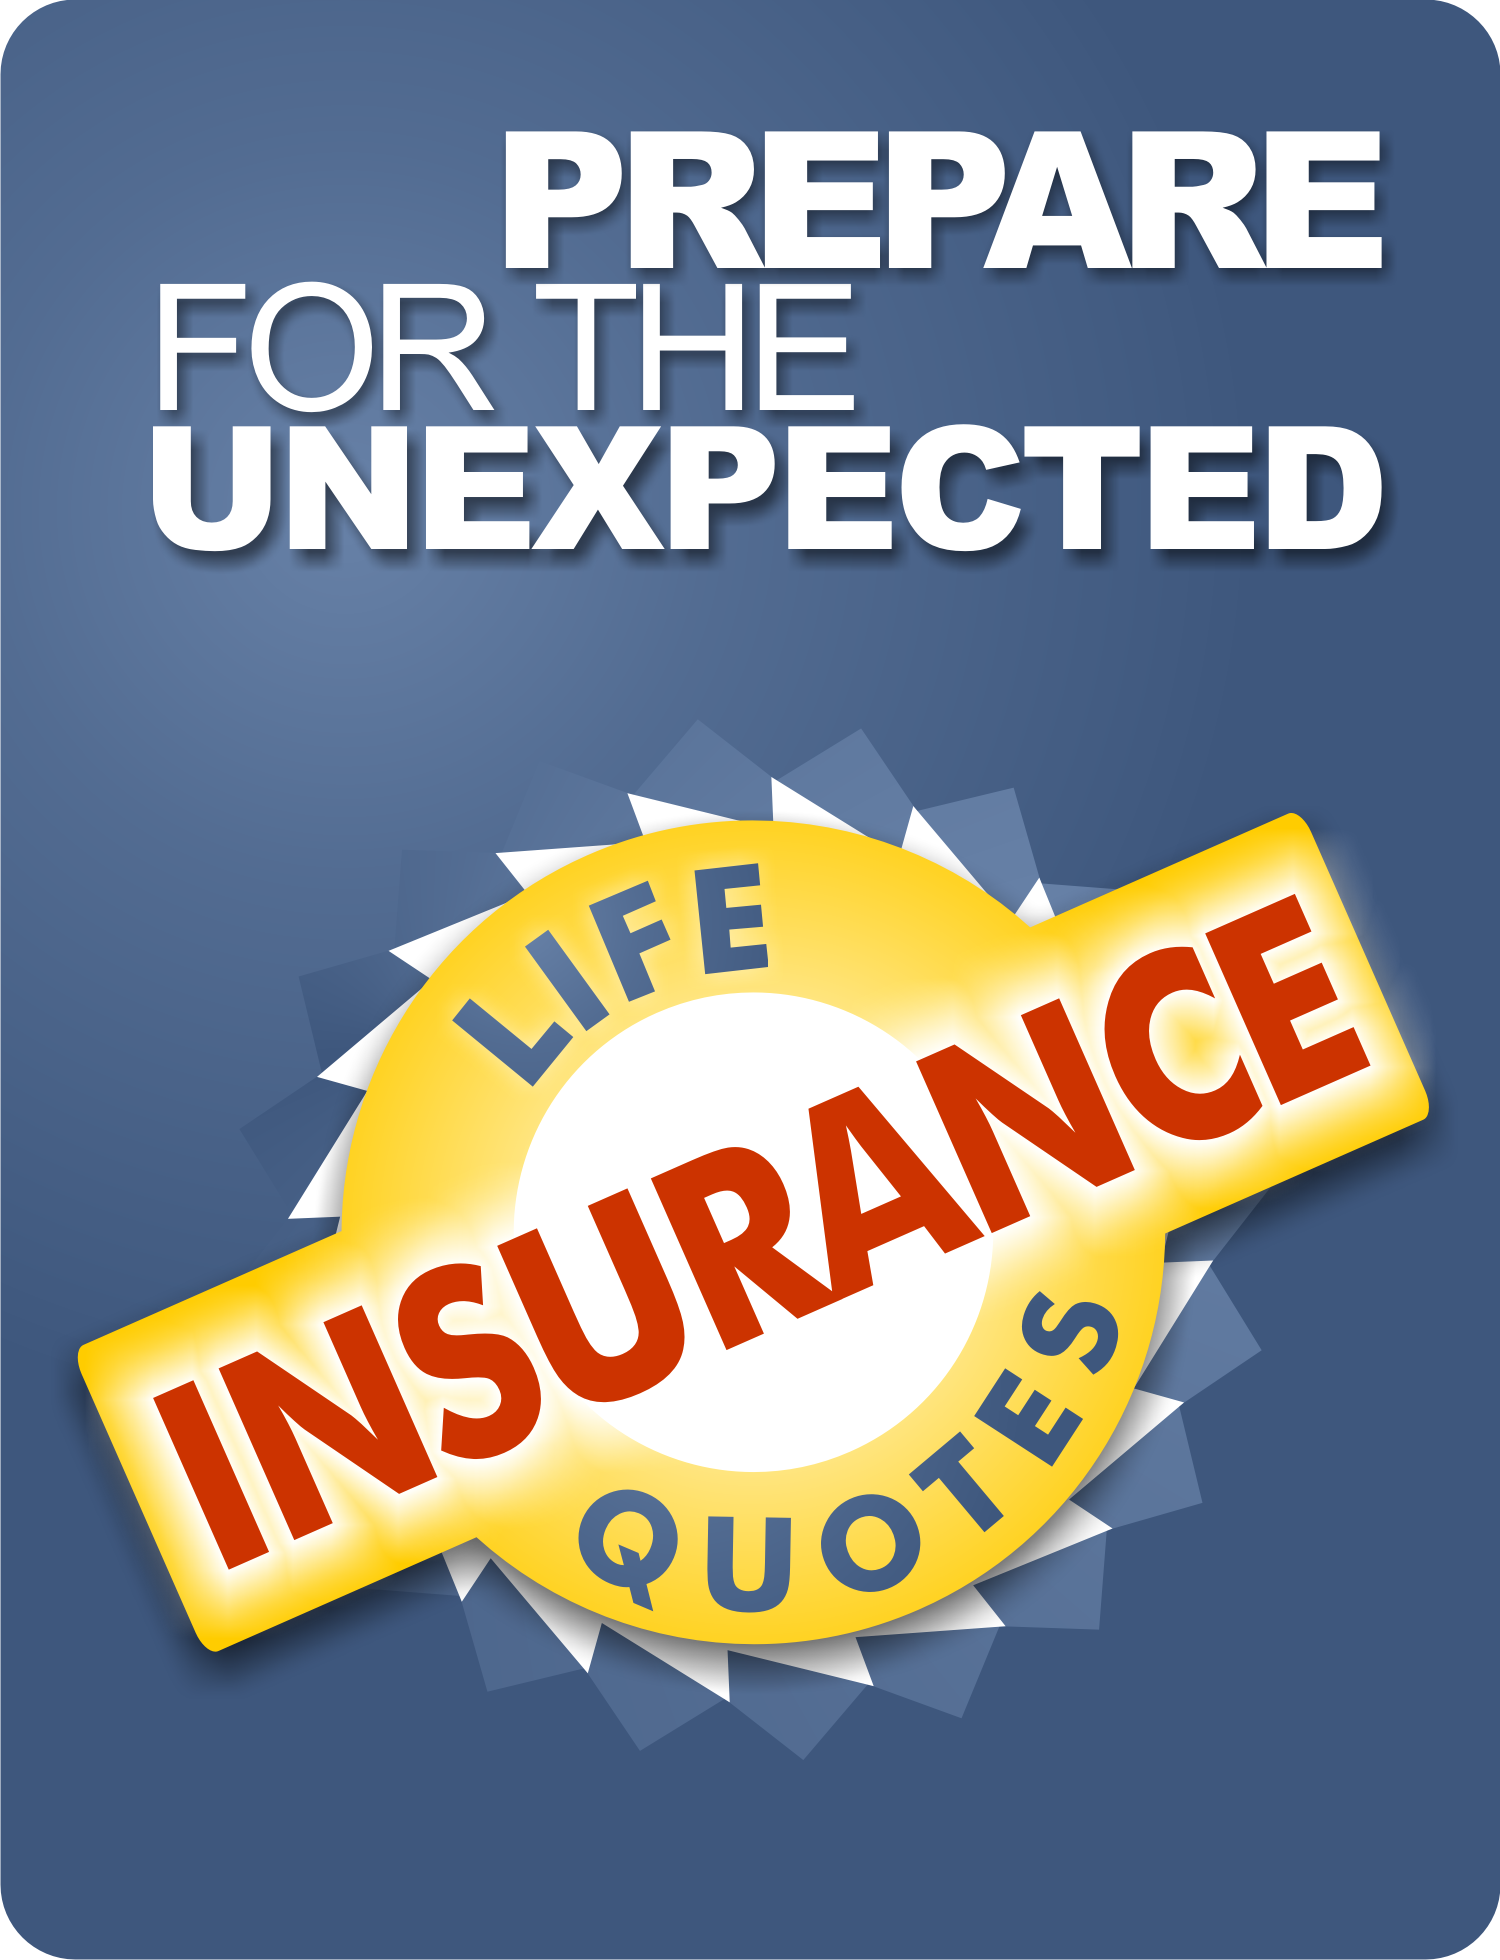 Insurance quote #3